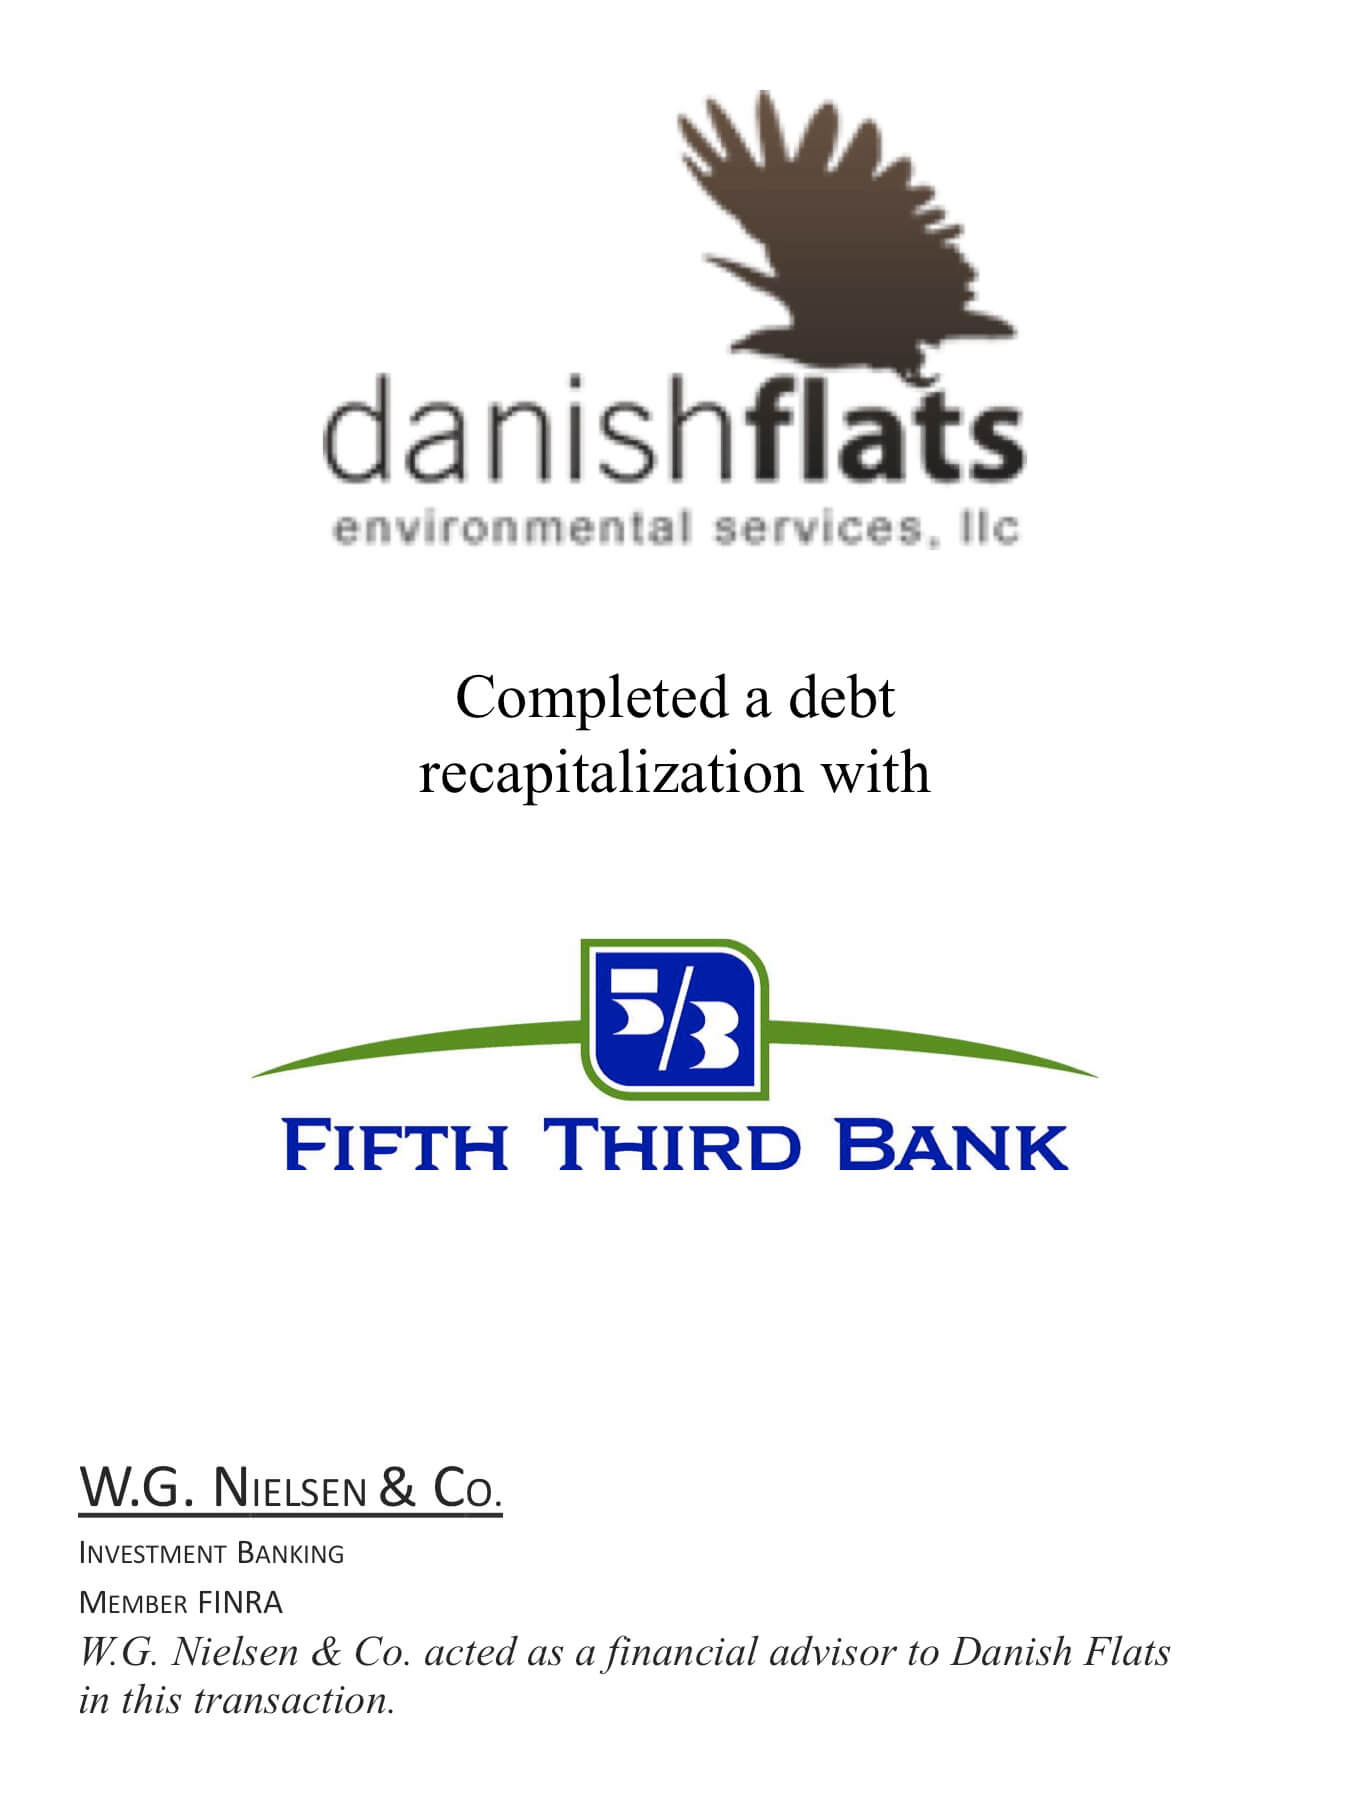 danish flats investment banking transaction